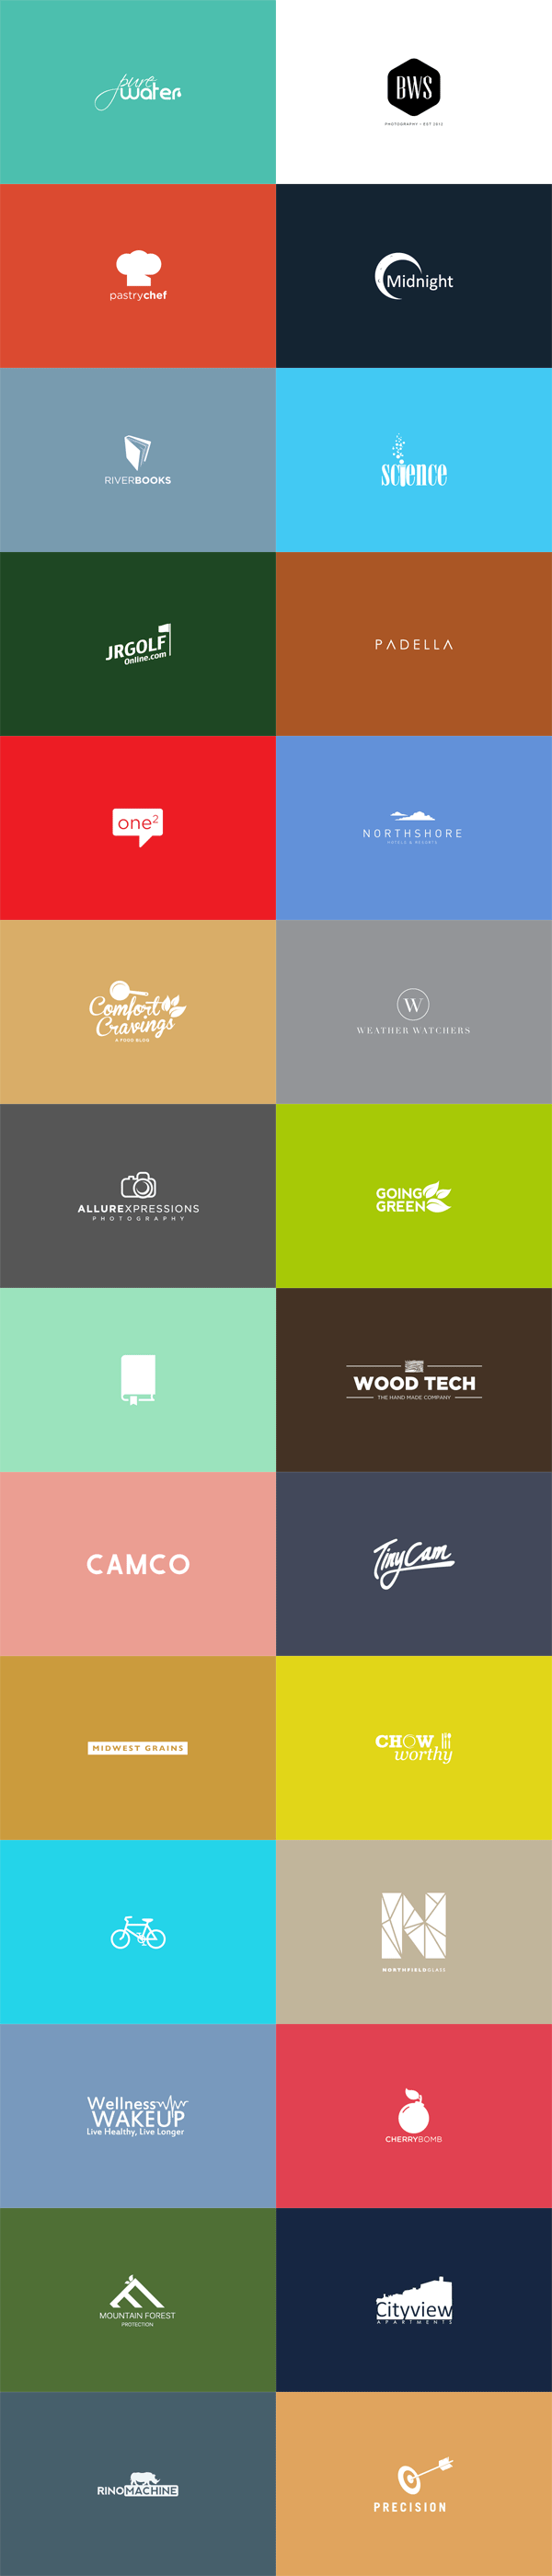 LogoFolio no. 1 by Brandon Williams